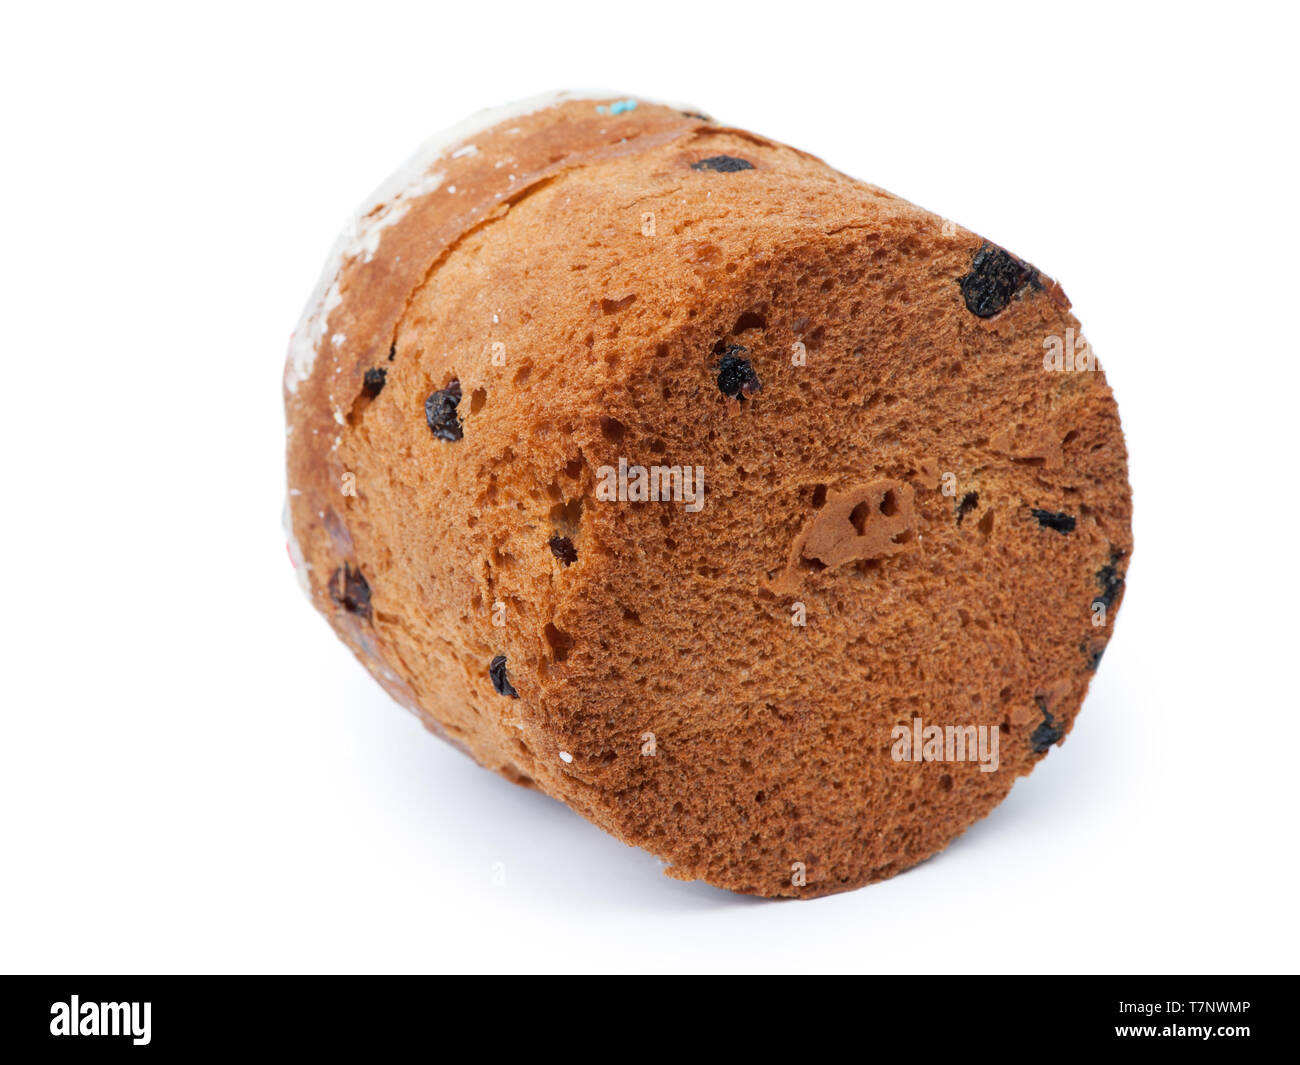 Easter cake with raisins and white cap made of icing and colored powder isolated on white background. Traditional Russian festive homemade bread for c - Stock Image